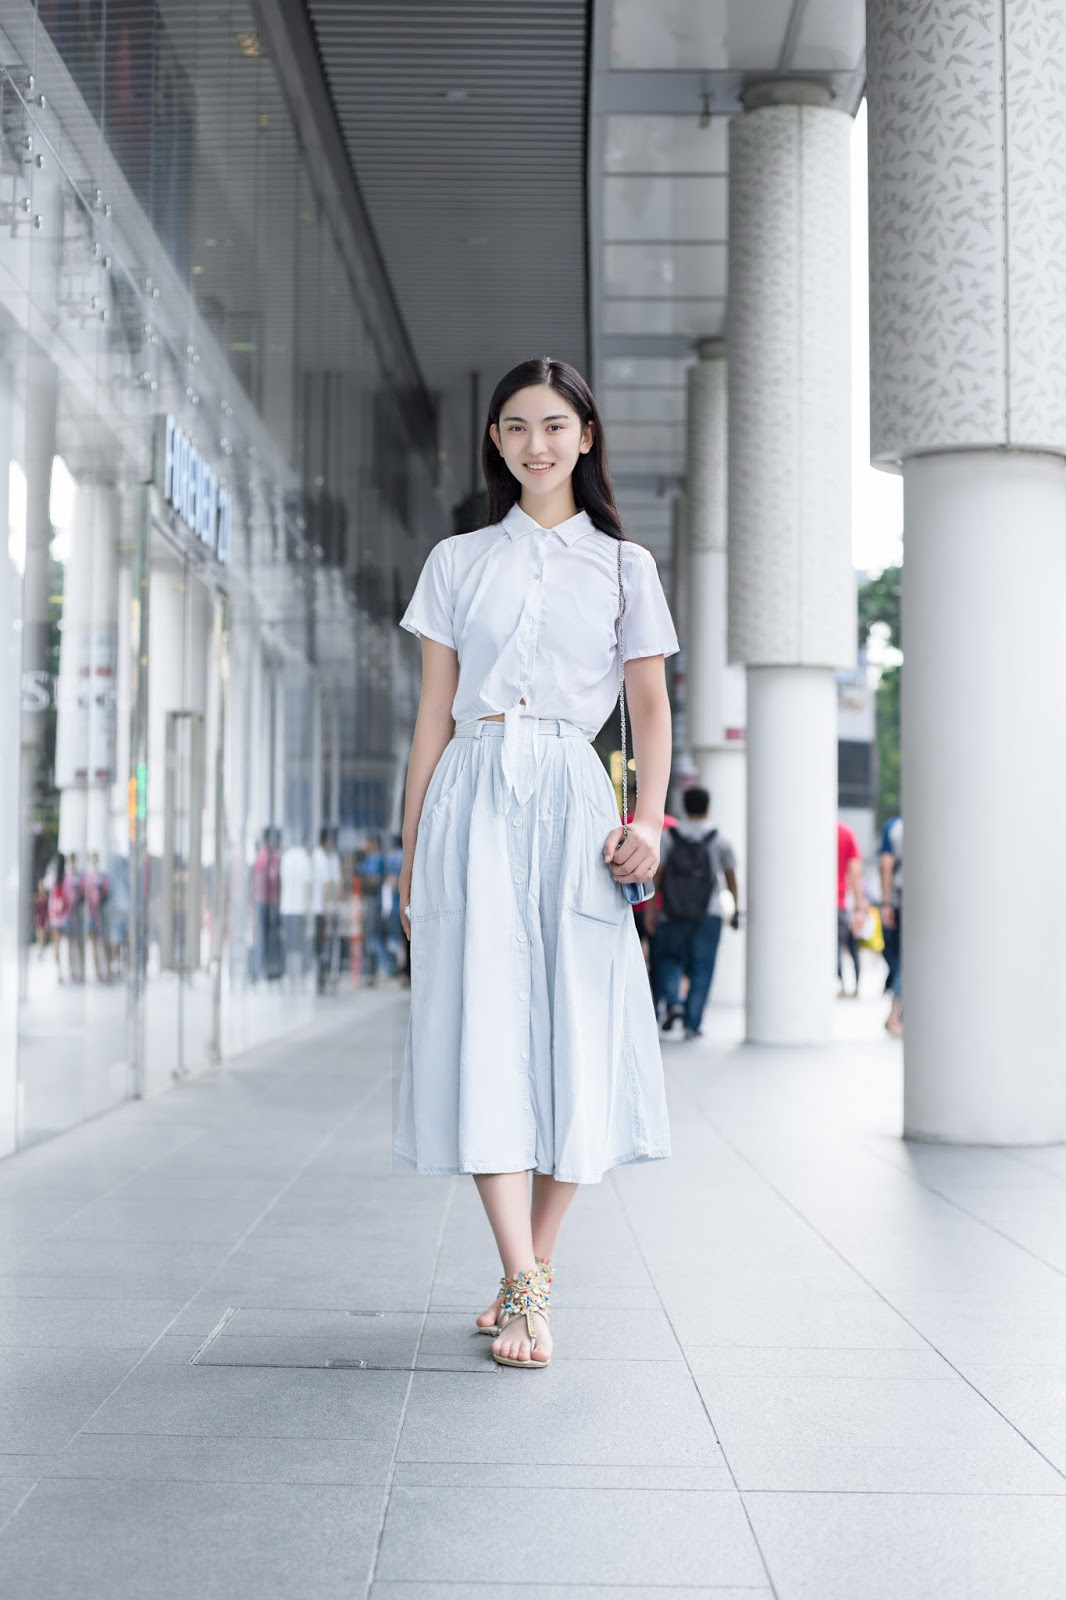 SHENTONISTA-Ren Ran-Student-Beijing-Top_American_Apparel-Skirt_American_Apparel-Bag_American_Apparel-Shoes_Beijing-080515-5